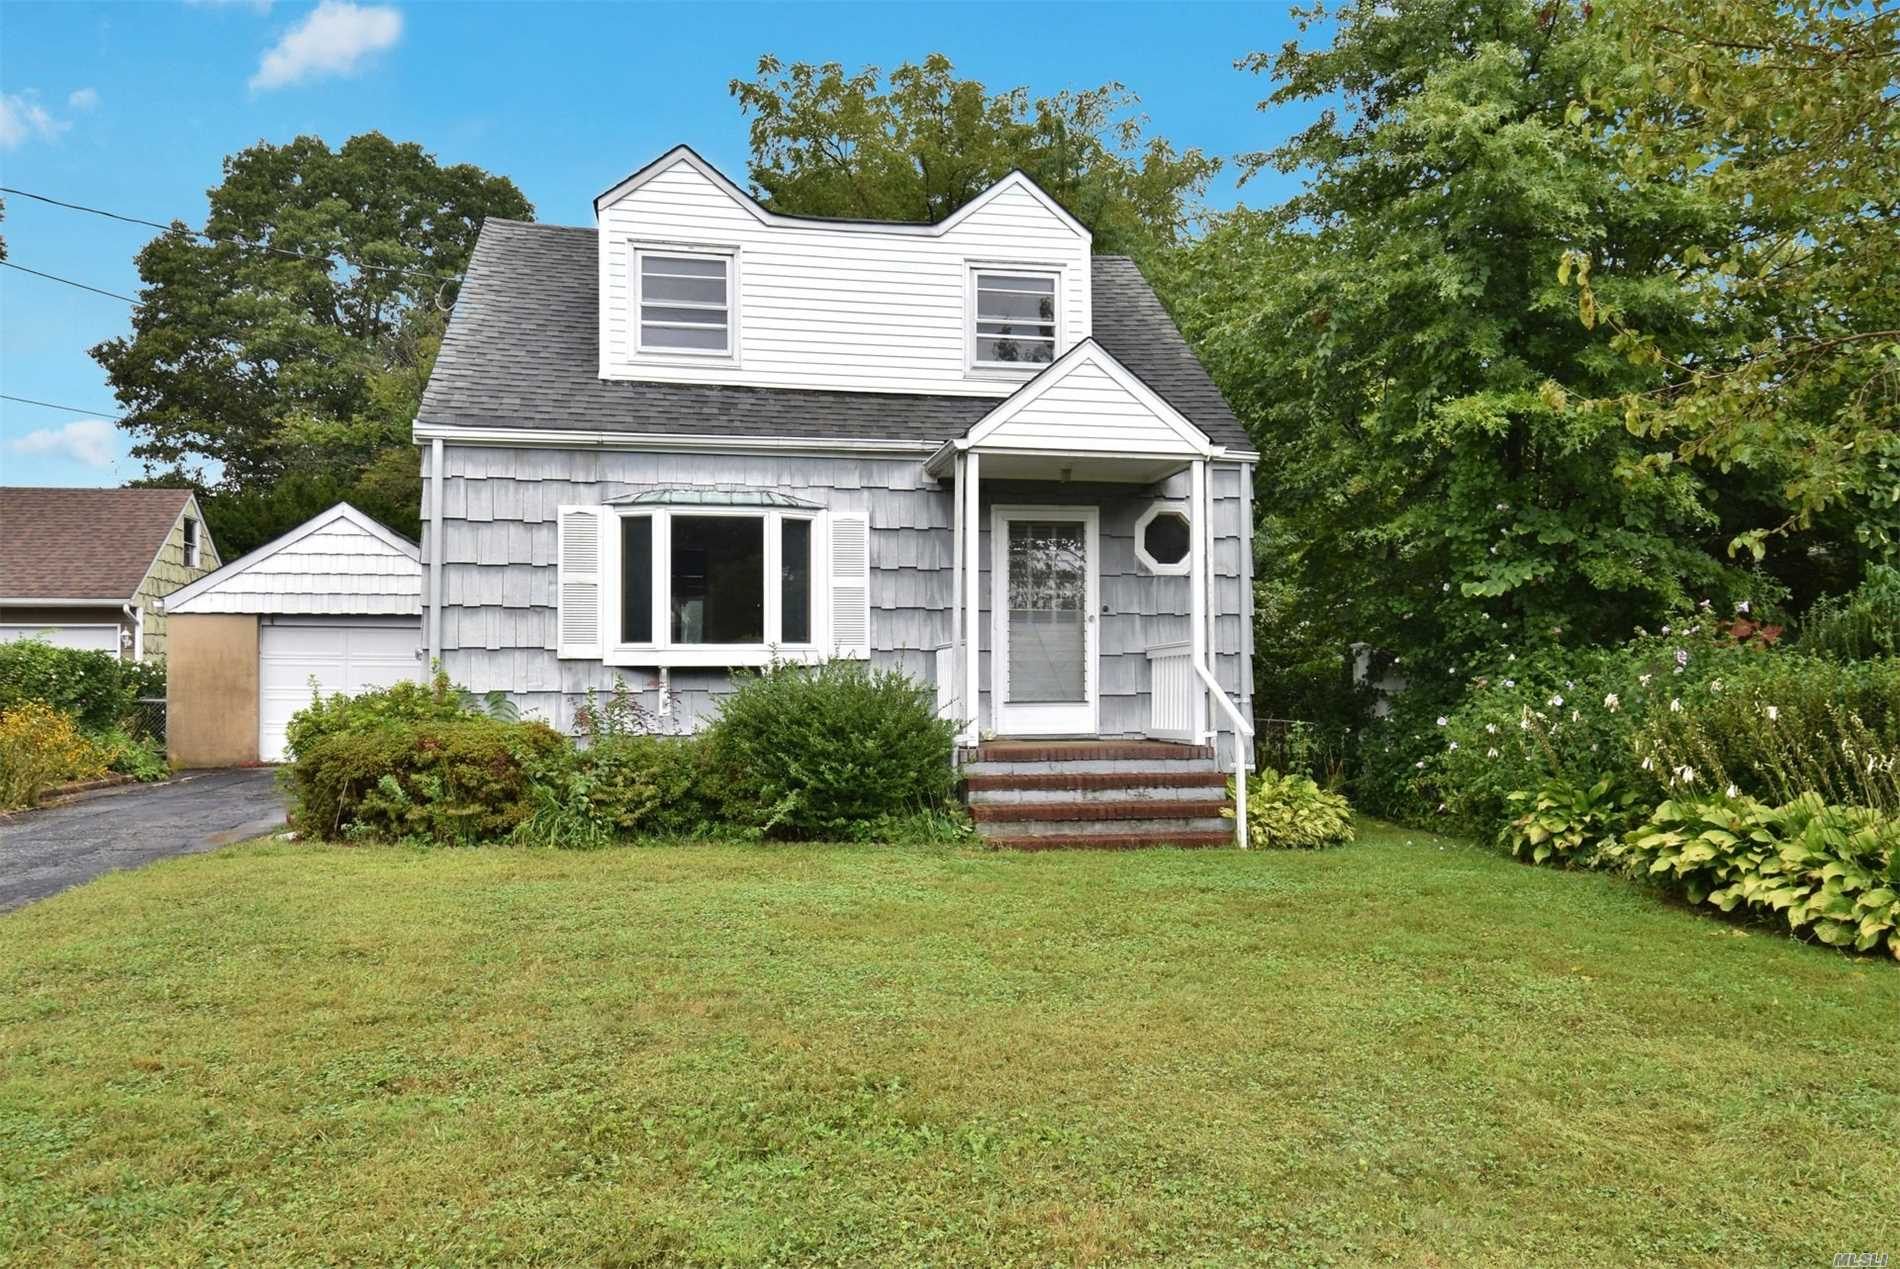 Charming Colonial Awaiting Your Touches! Well Maintained Older Colonial On Lovely .21 Acre With Mid-Block Location. Easy Access To Shopping And Transportation. Don't Miss!